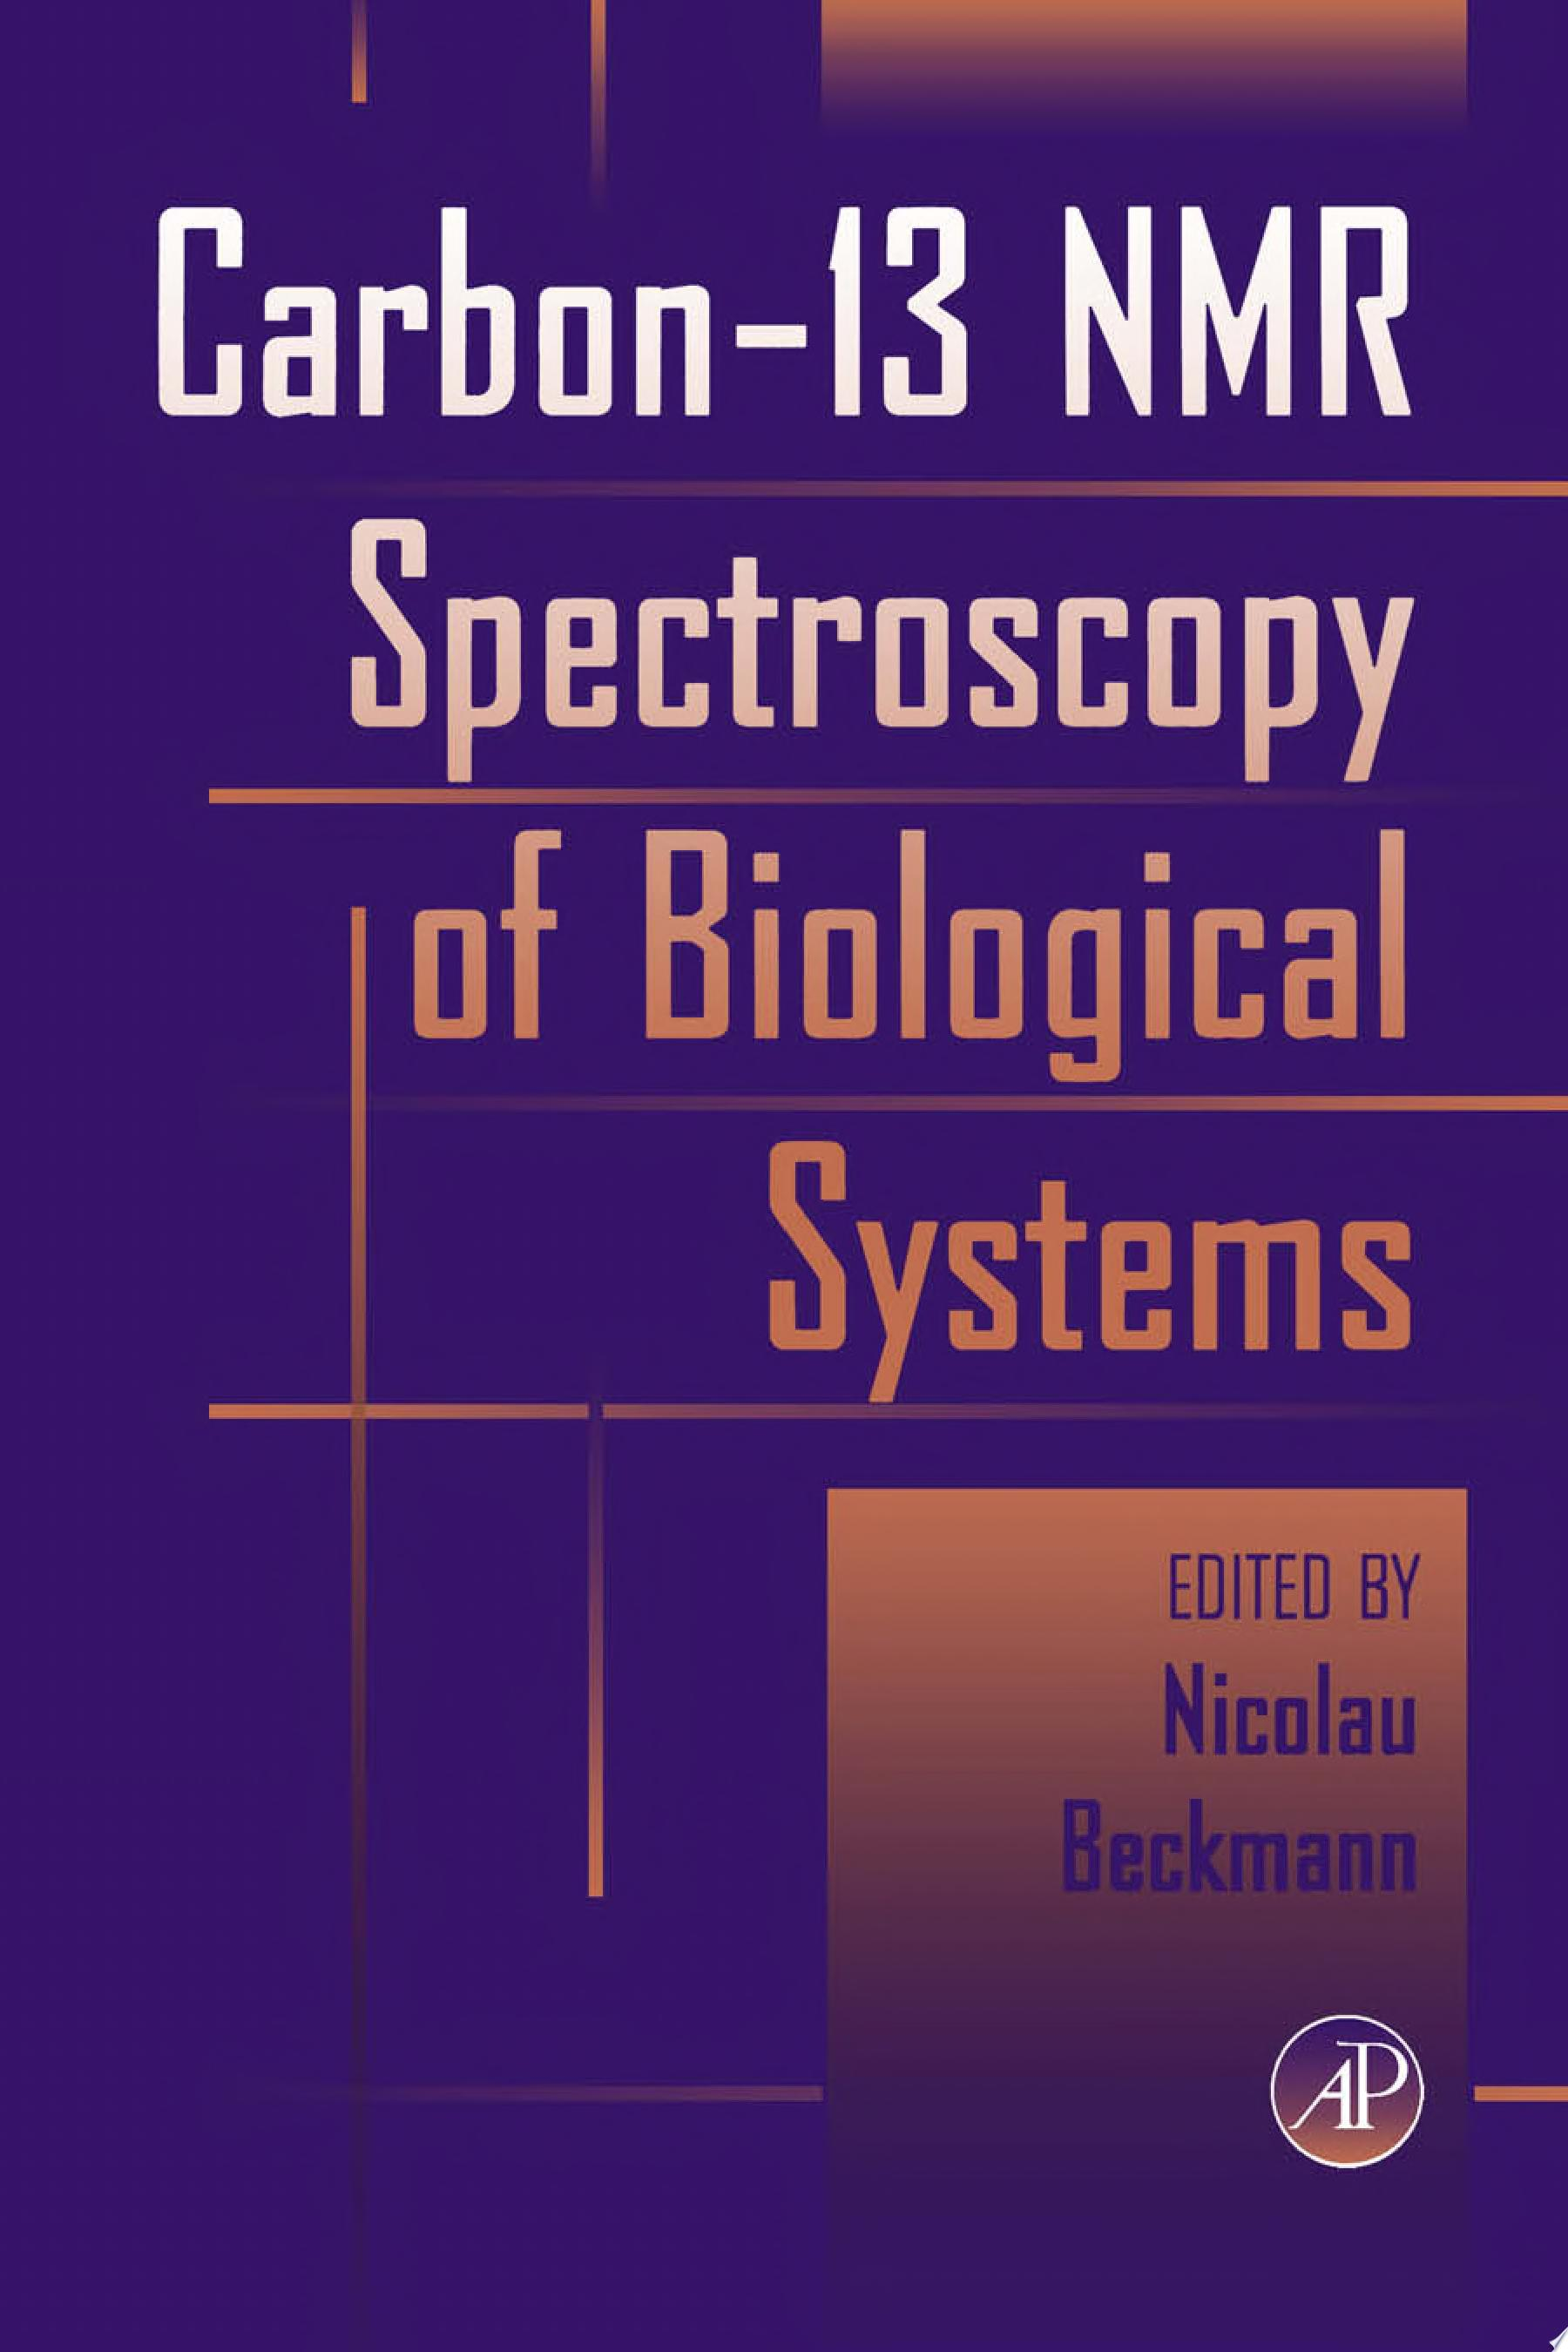 Carbon 13 NMR Spectroscopy of Biological Systems